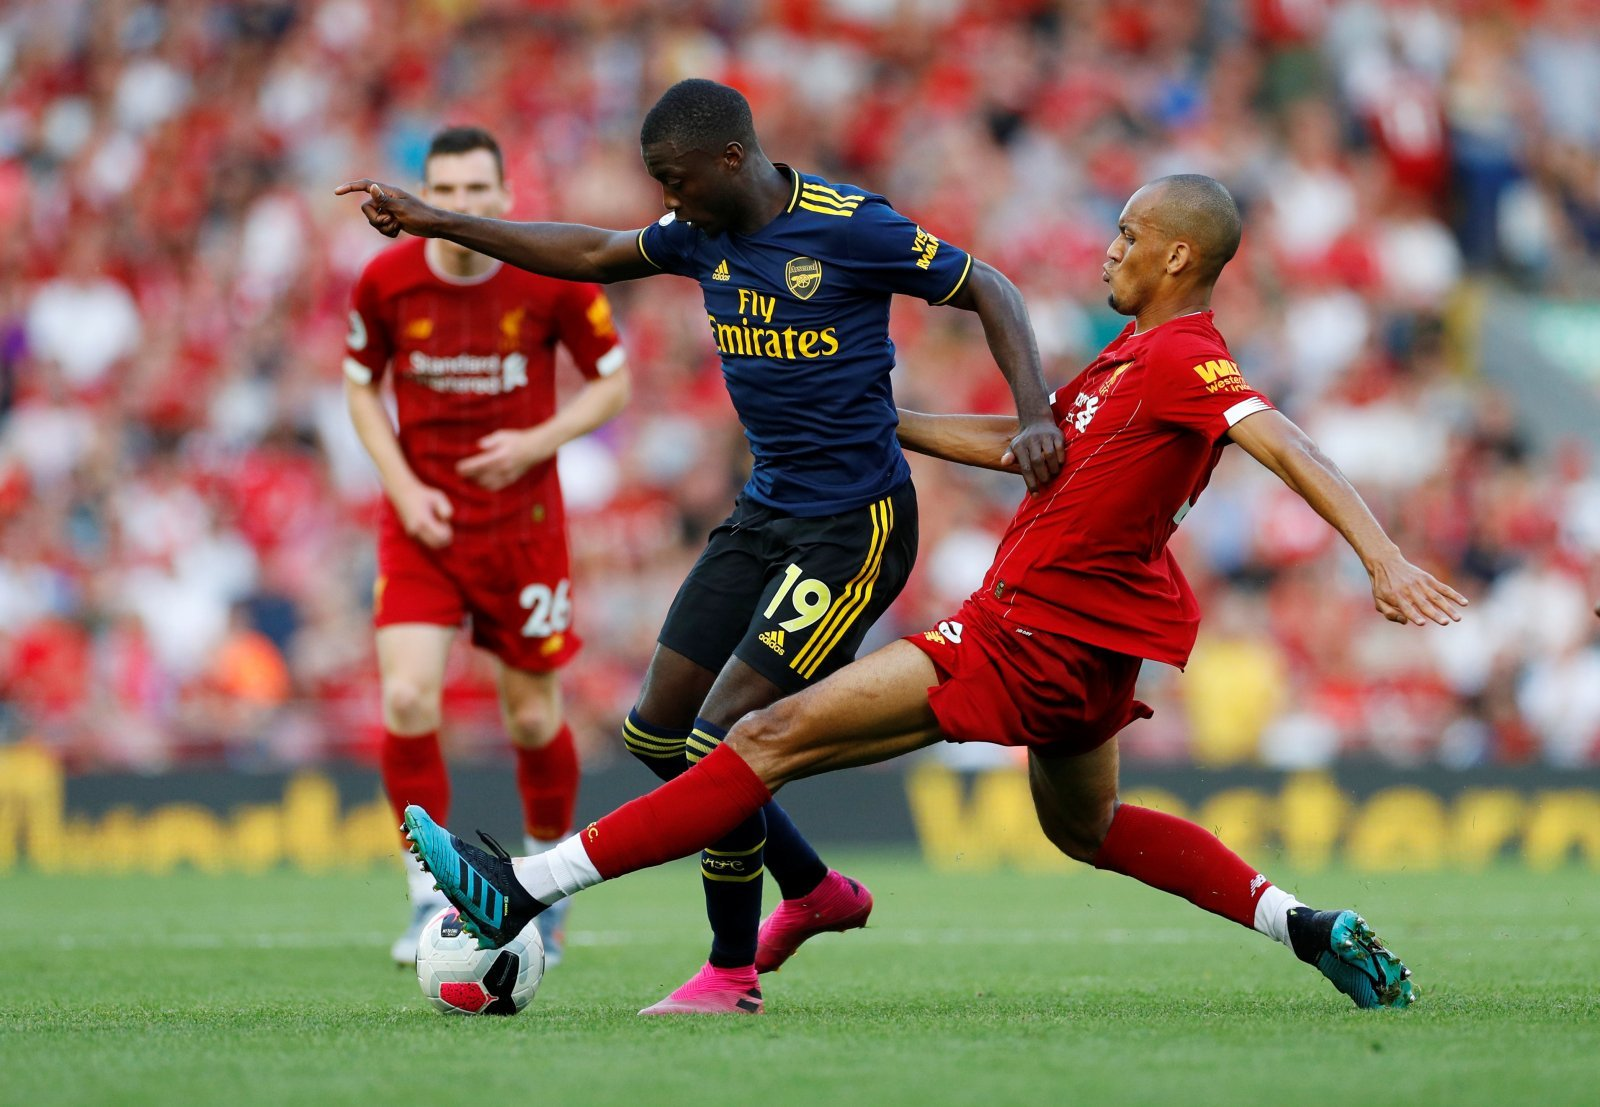 Unsung Hero: Liverpool's Fabinho impresses with a busy display against Arsenal